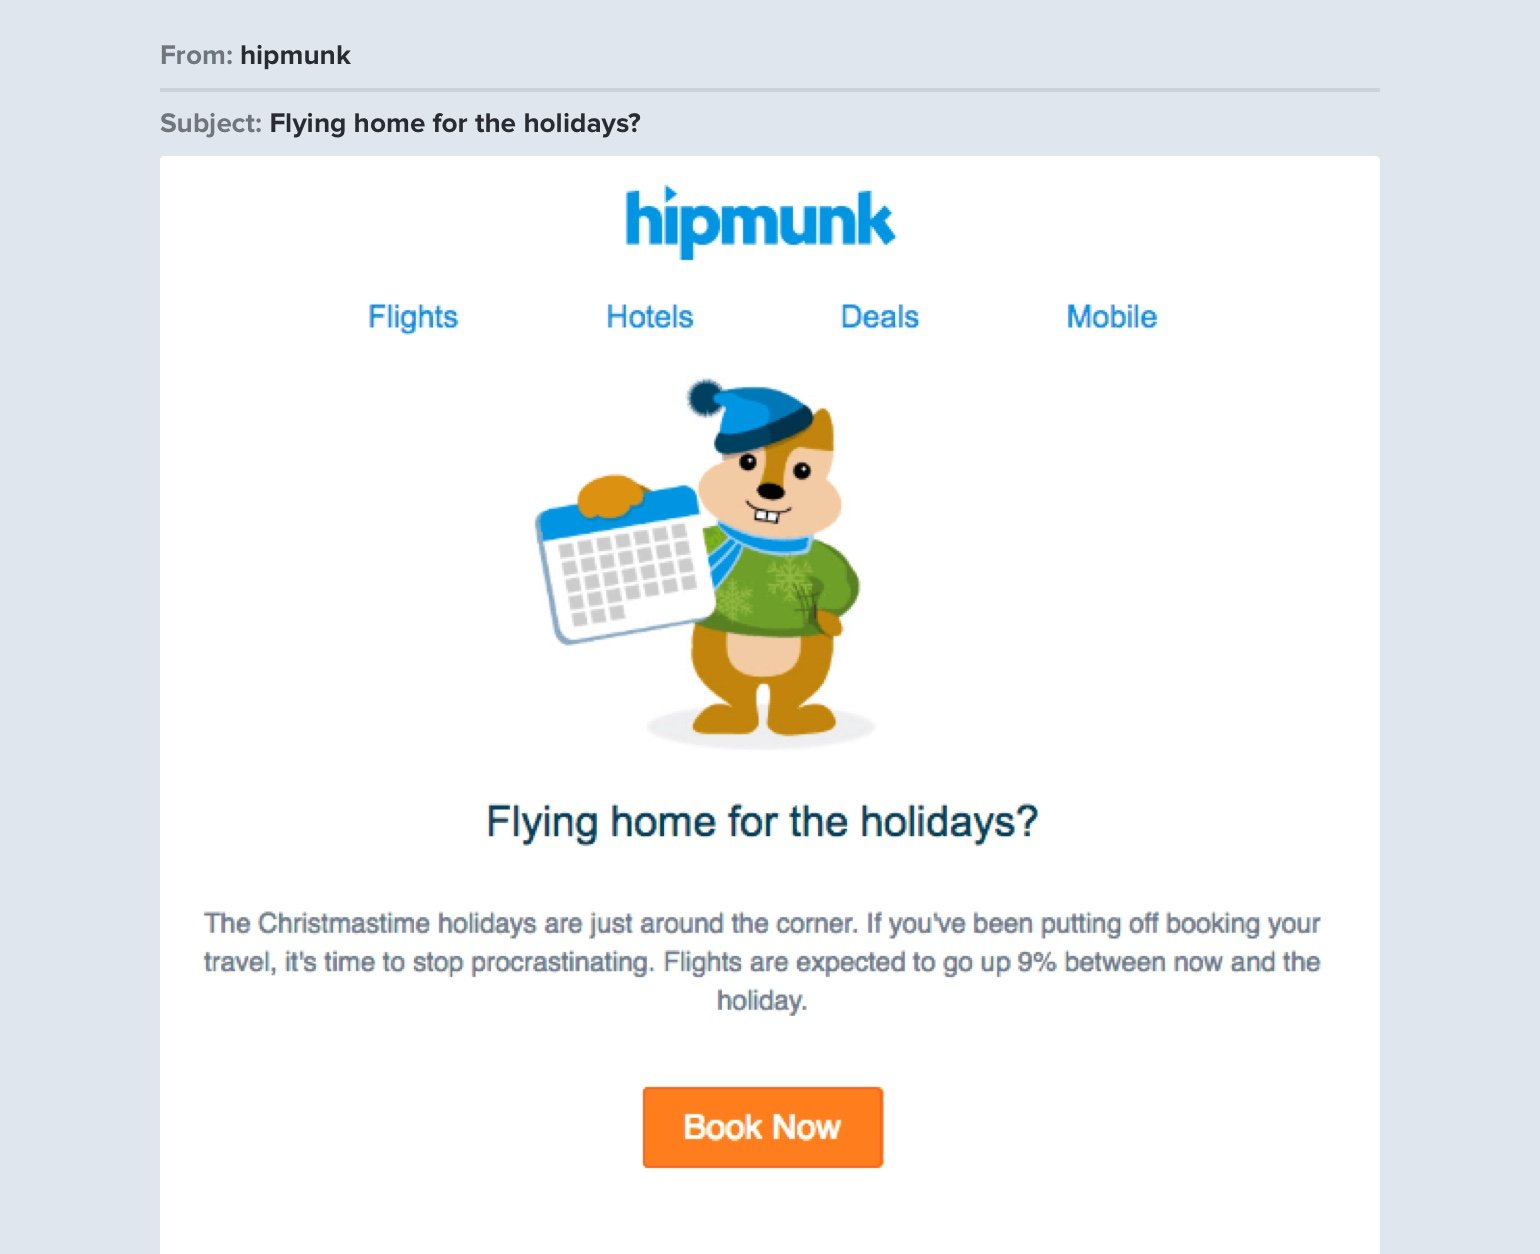 Travel email marketing: selling sunsets, not flight tickets